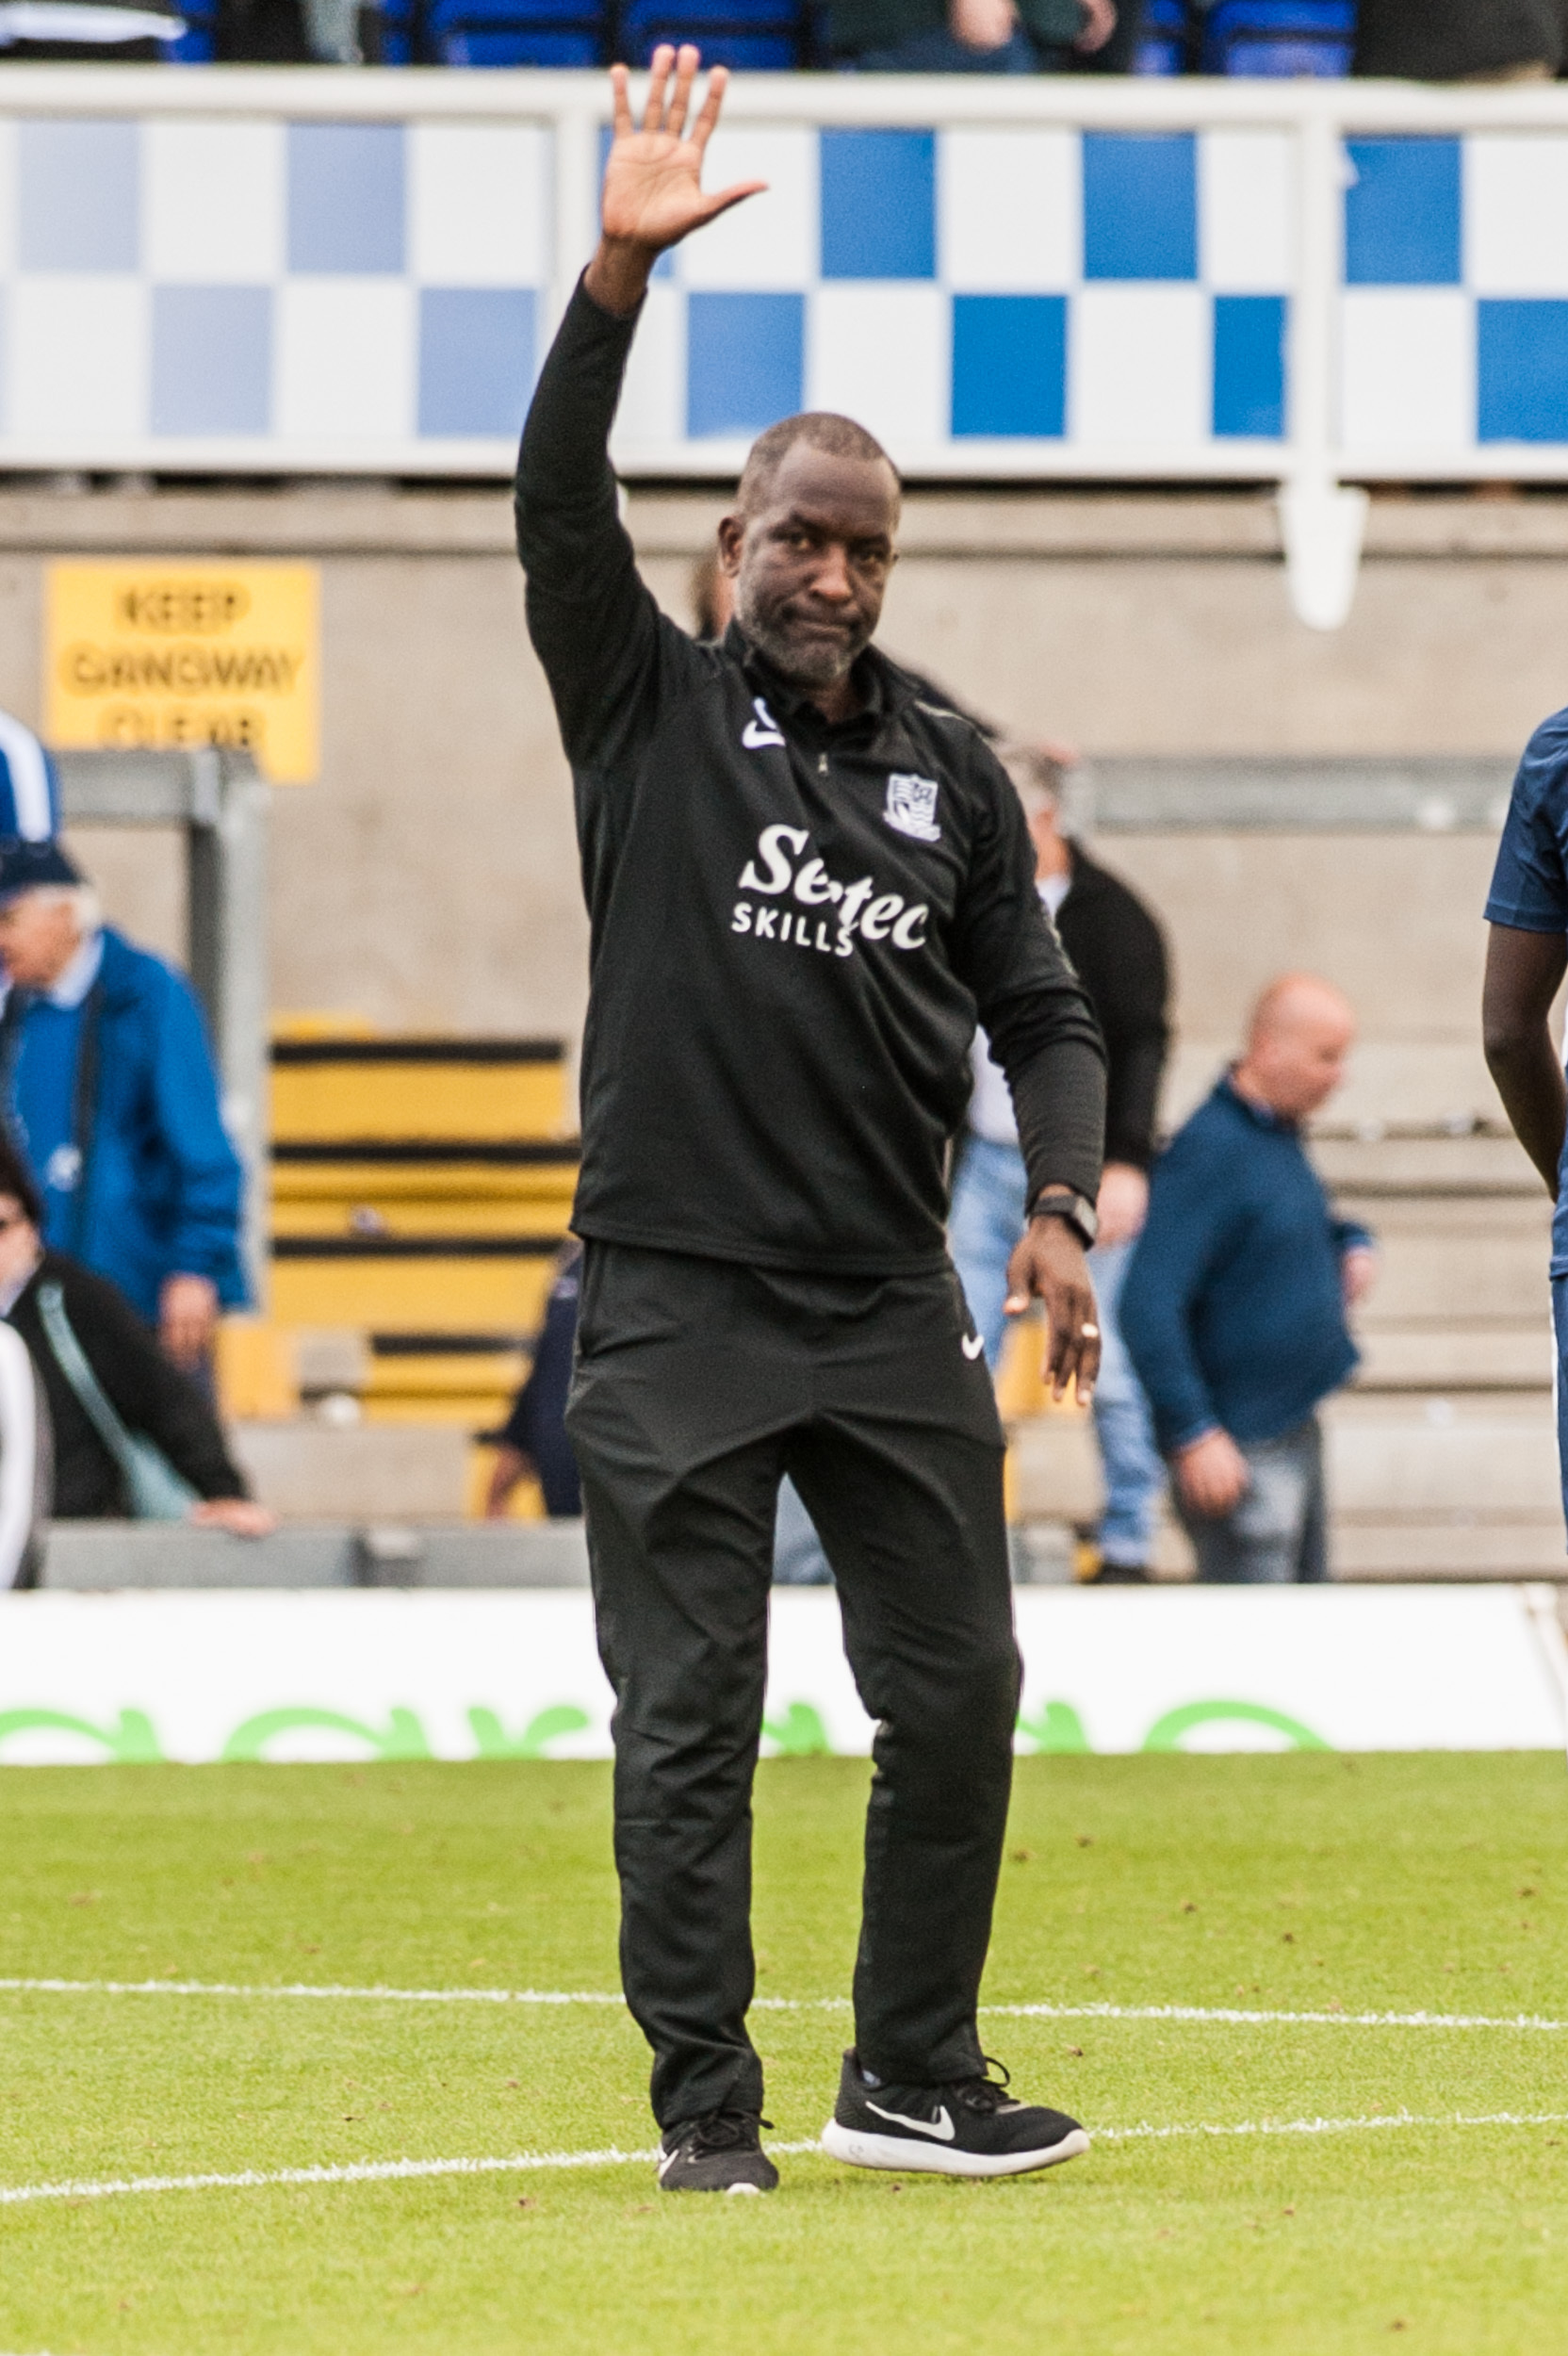 Shortlisted - Southend United manager Chris Powell